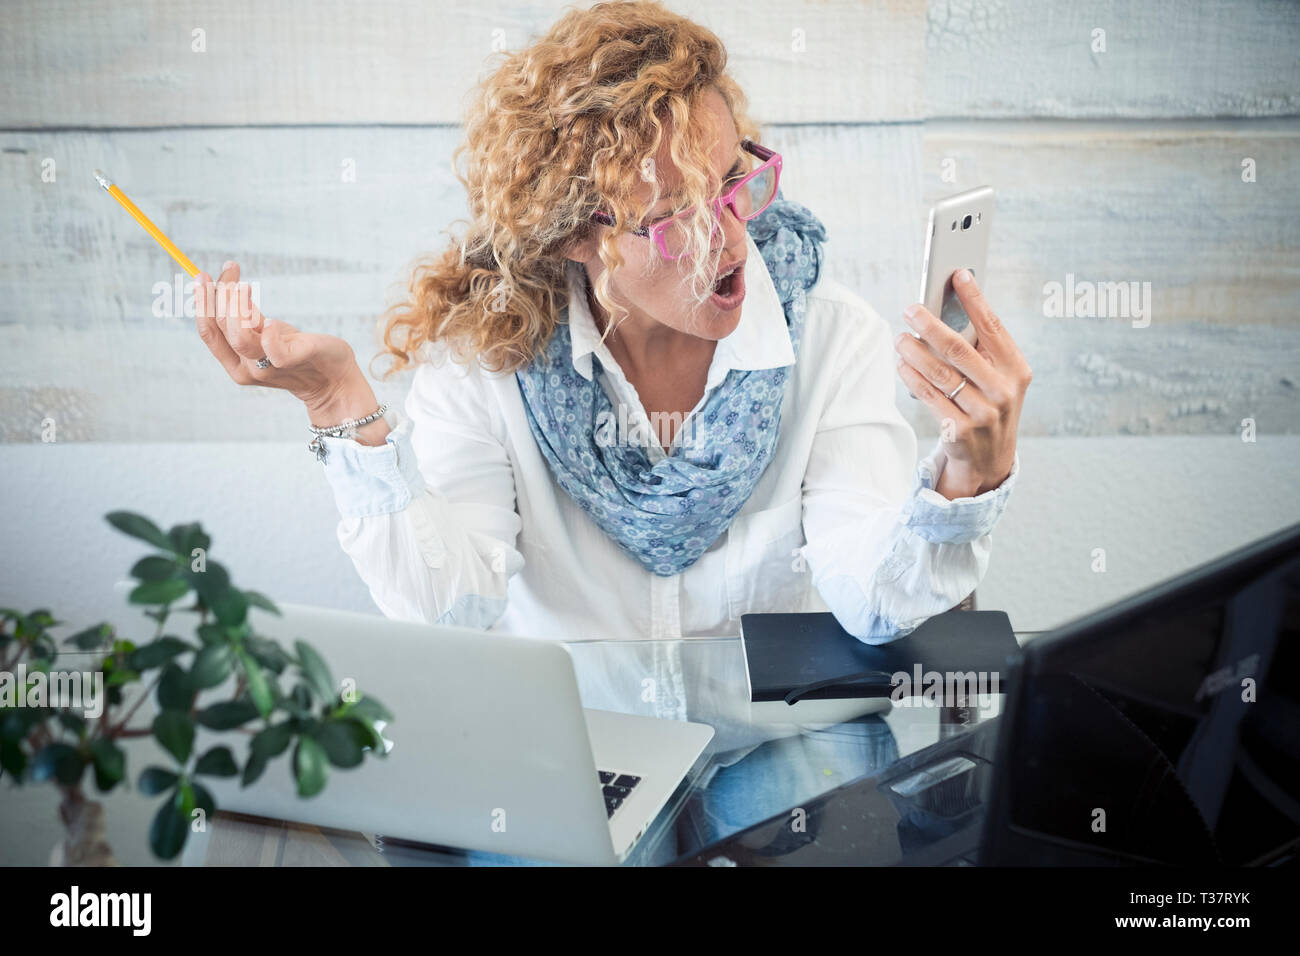 Stressed business woman shout at the phone call - two laptop on the desk and technology everywhere to work - workstation with female people - modern j Stock Photo